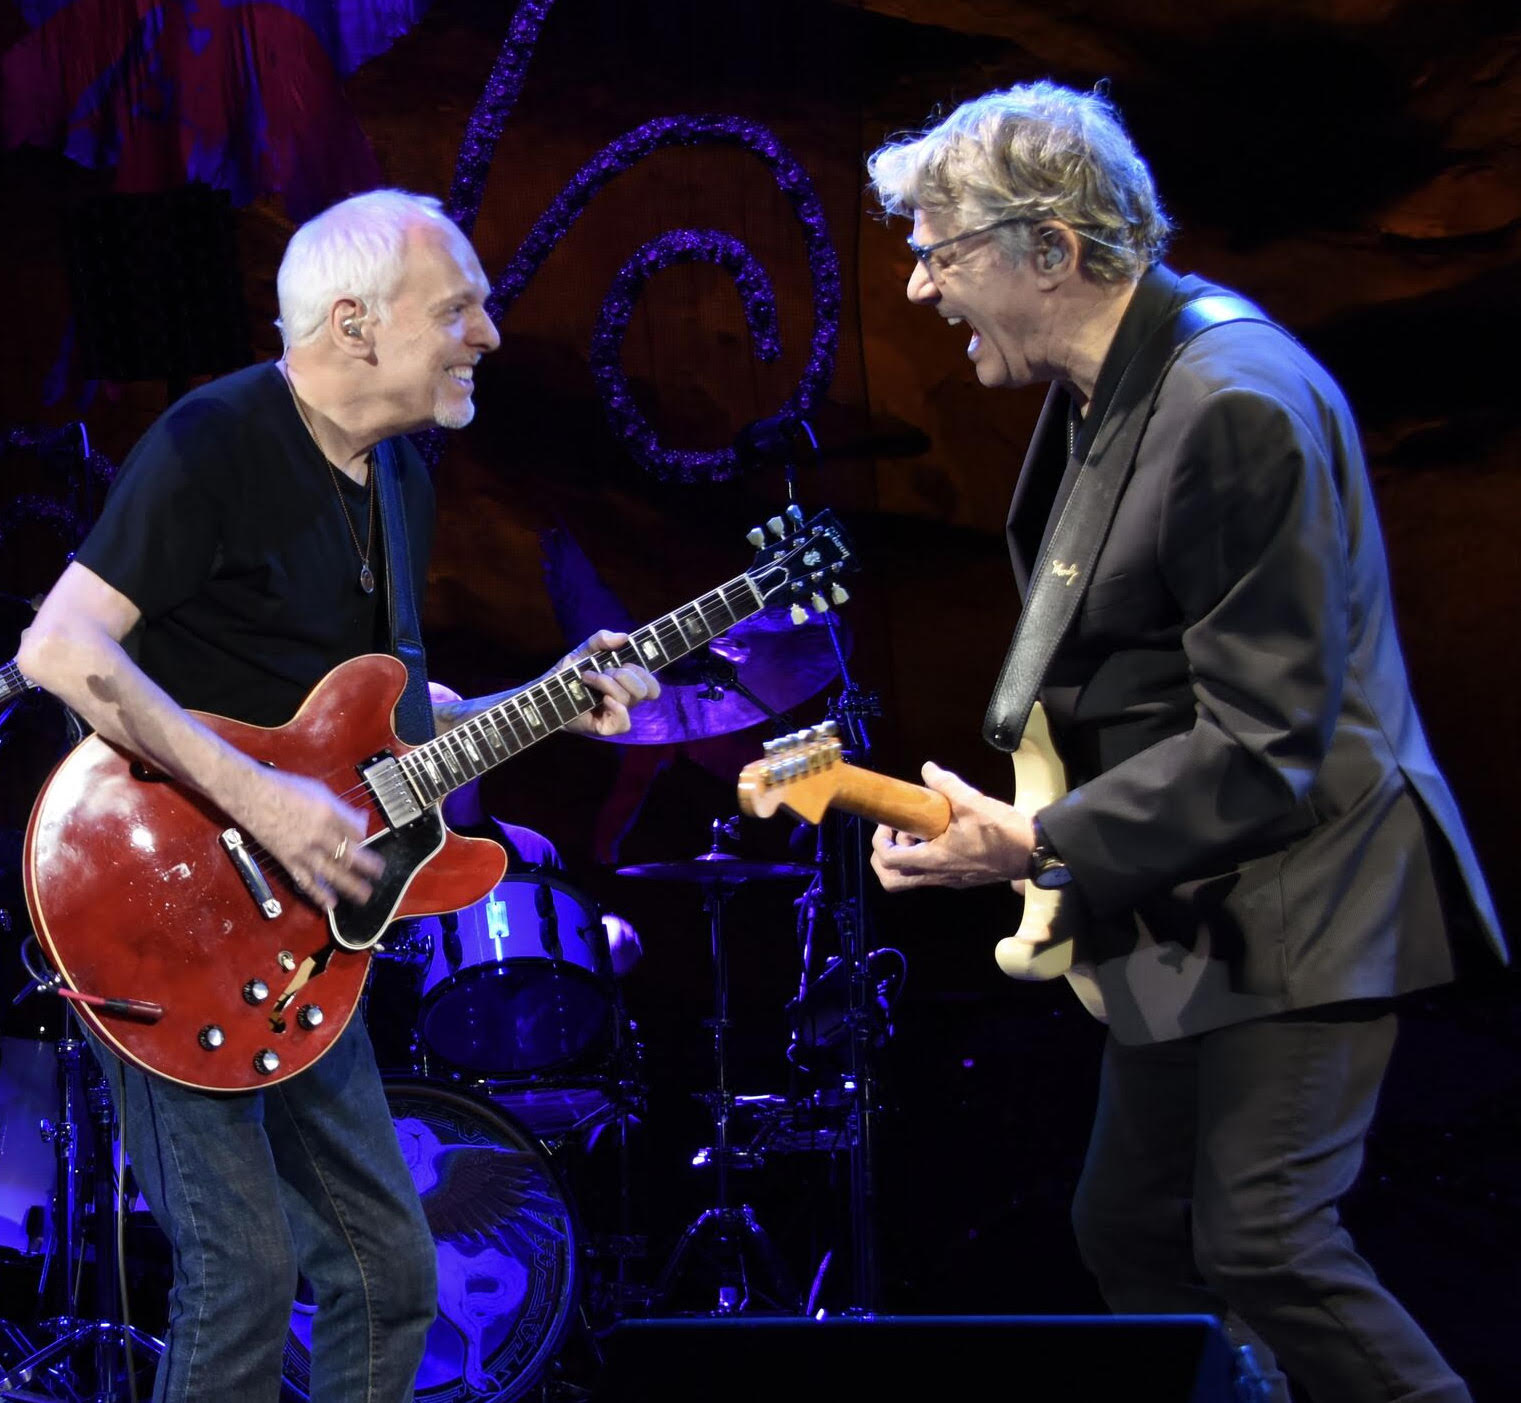 Peter Frampton, left, shares the stage with Steve Miller. (Photo courtesy of Artpark & Company).